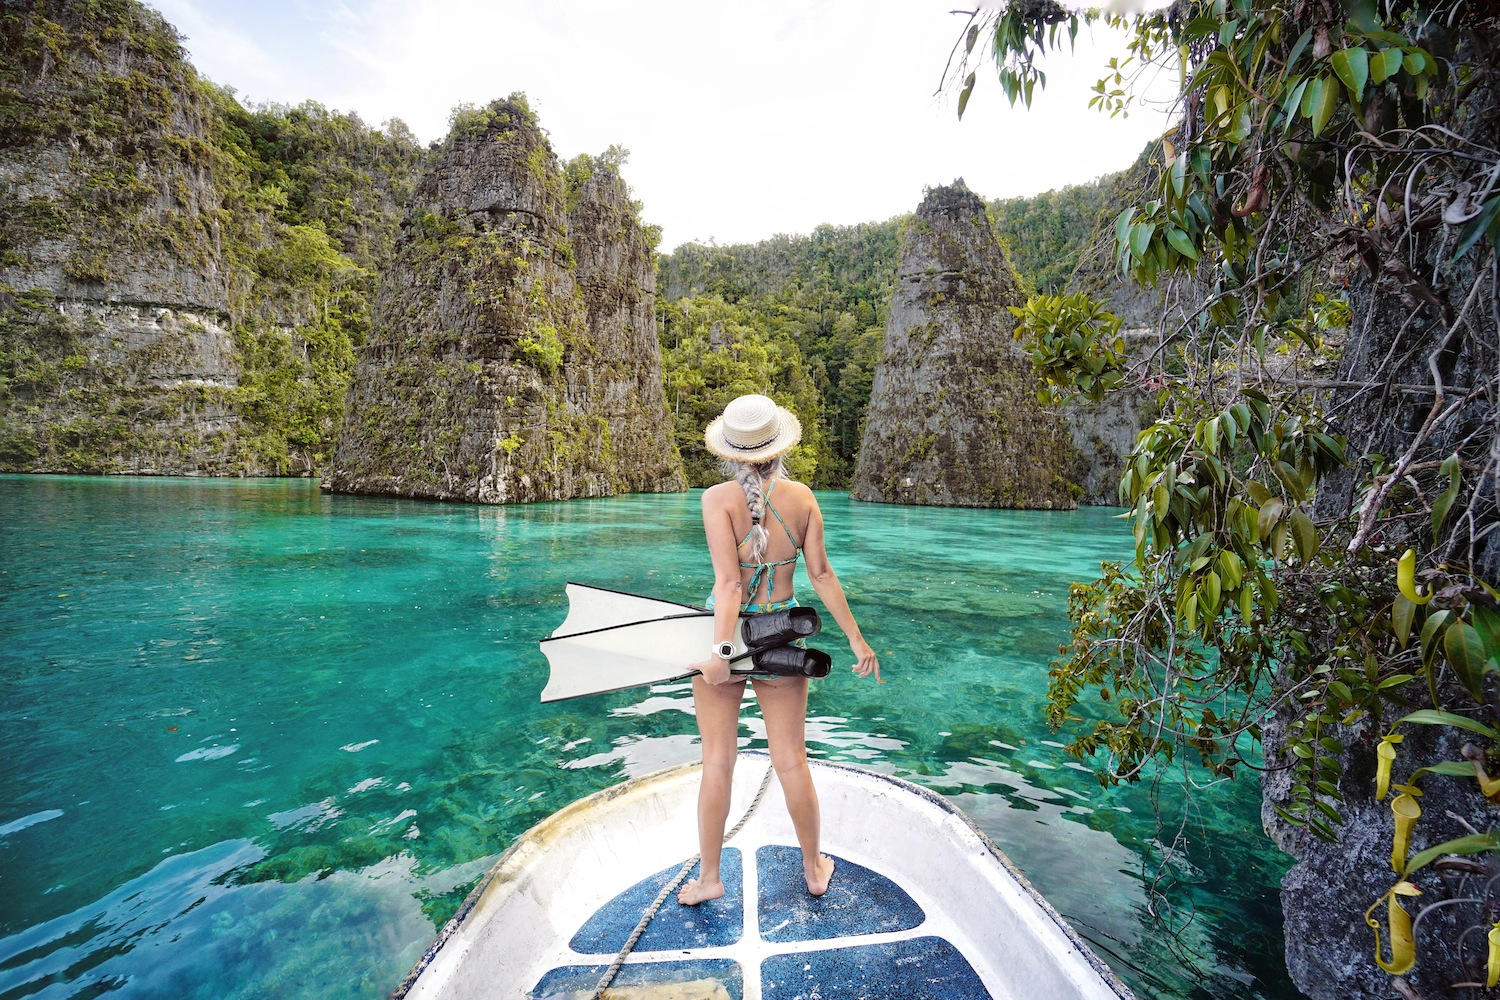 """<a href=""""http://mataram.info/things-to-do-in-bali/visitindonesia-banda-marine-life-the-paradise-of-diving-topographic-point-inward-fundamental-maluku/"""">Indonesia</a>best destinations : Misool: Gate Of Heaven"""